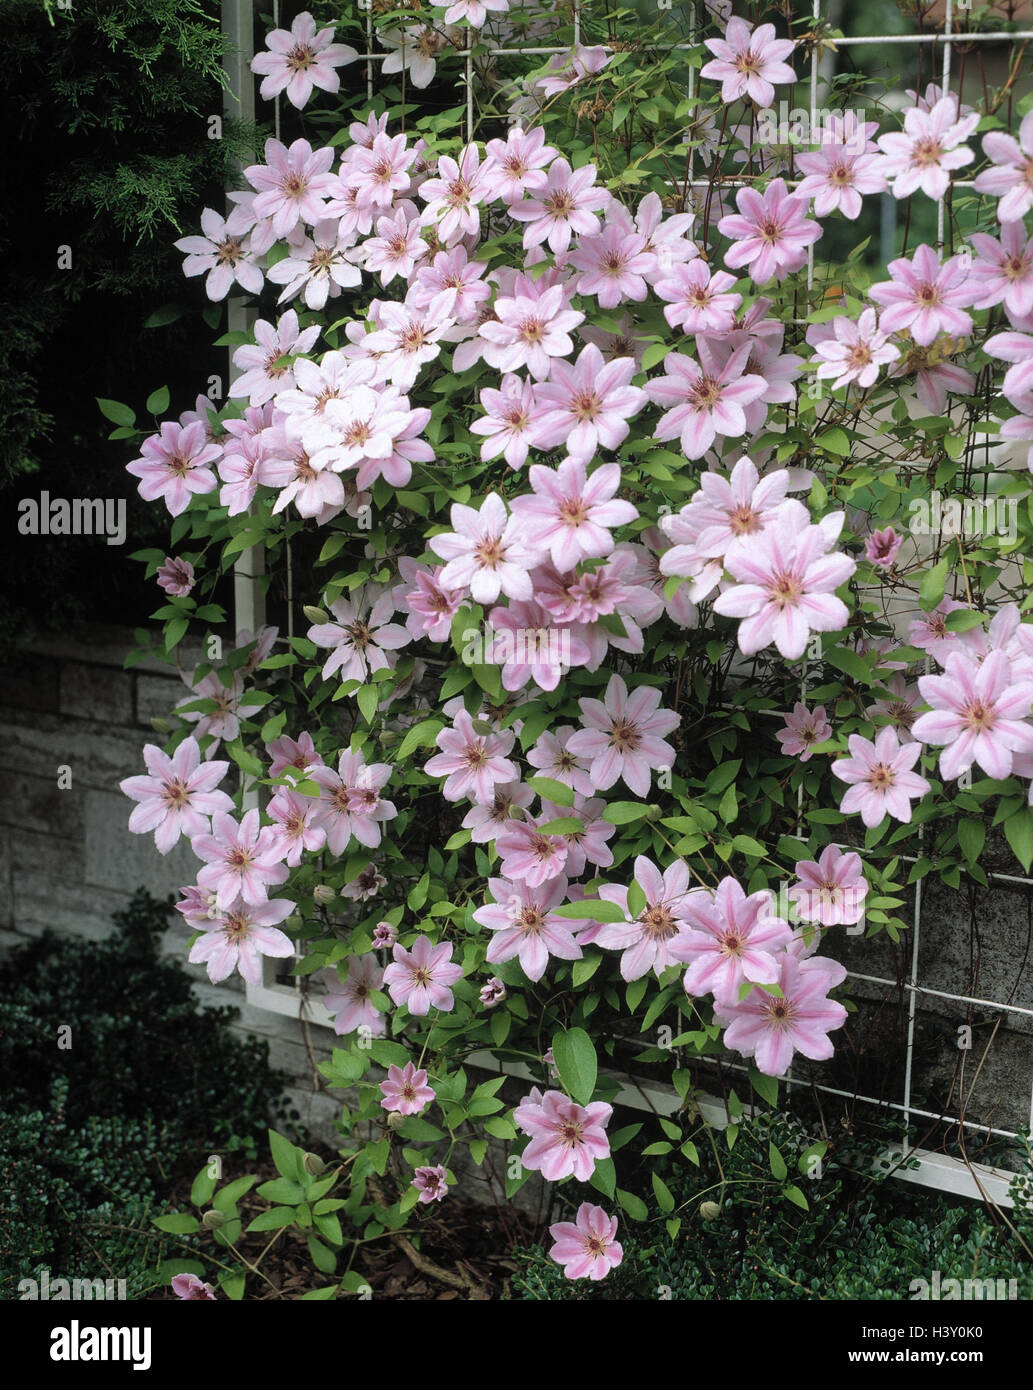 Clematis blossoms pink forest vine climbing plant crowfoot clematis blossoms pink forest vine climbing plant crowfoot plants plant flowers flower blossom blossom mightylinksfo